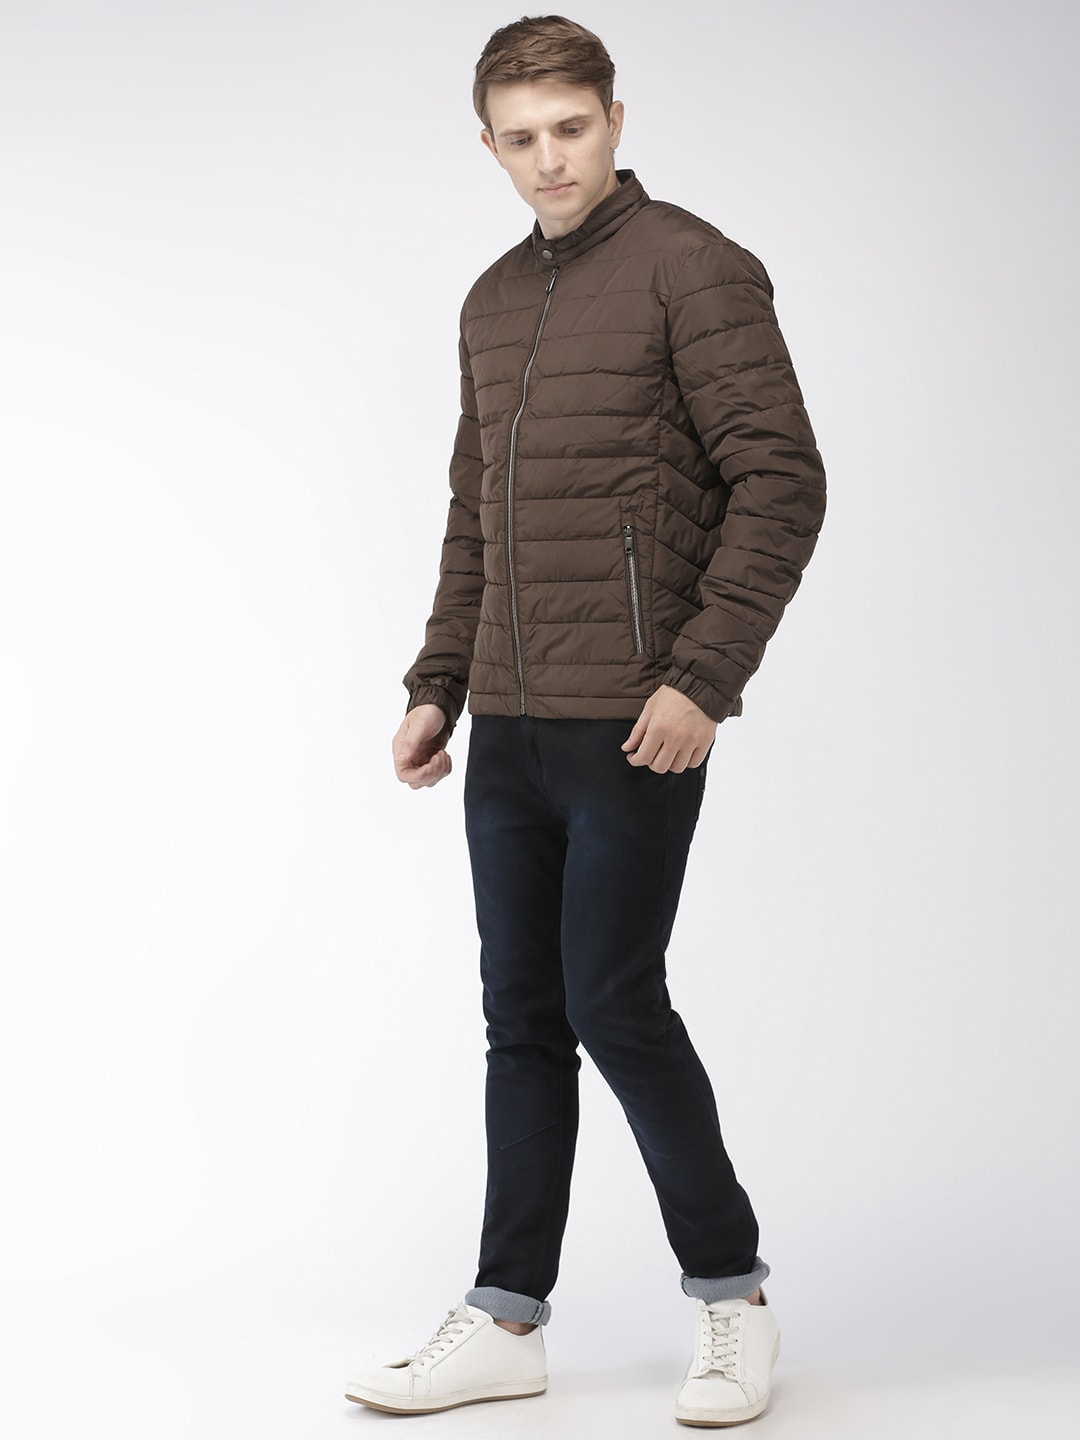 Celio Men Olive Brown Solid Water Resistant Light Weight Puffer Jacket